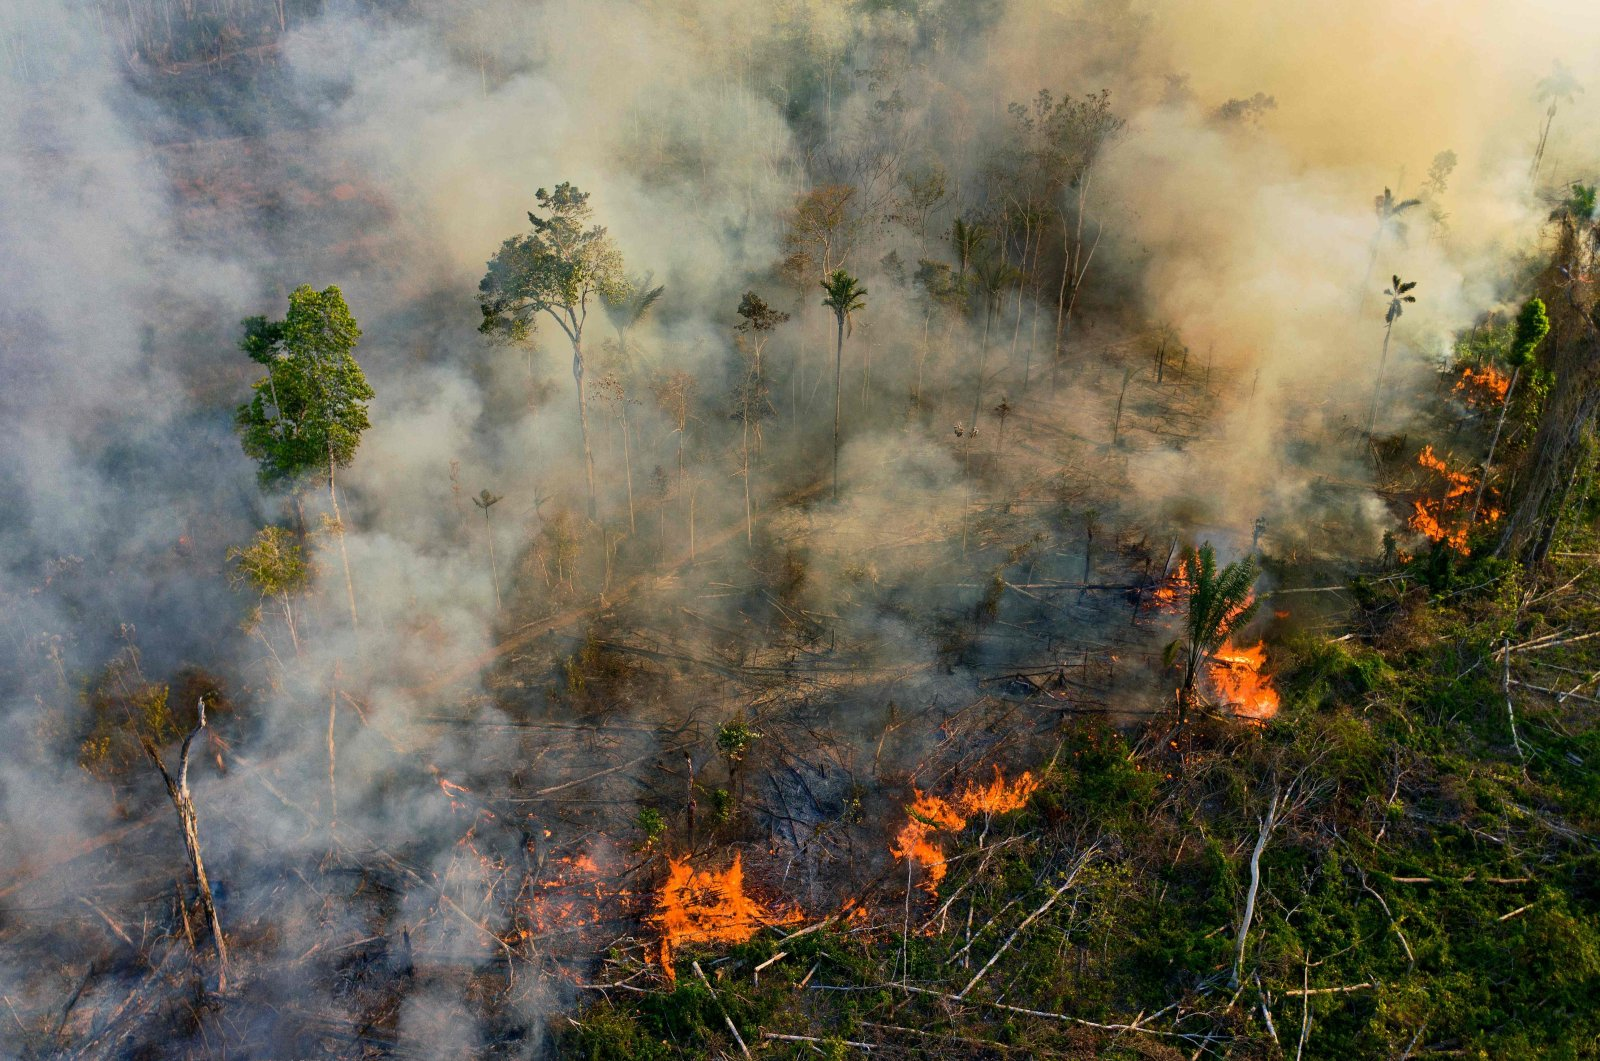 Smoke and flames rise from an illegally lit fire in the Amazon rainforest reserve, south of Novo Progresso in Para state, Brazil, Aug. 15, 2020. (AFP File Photo)